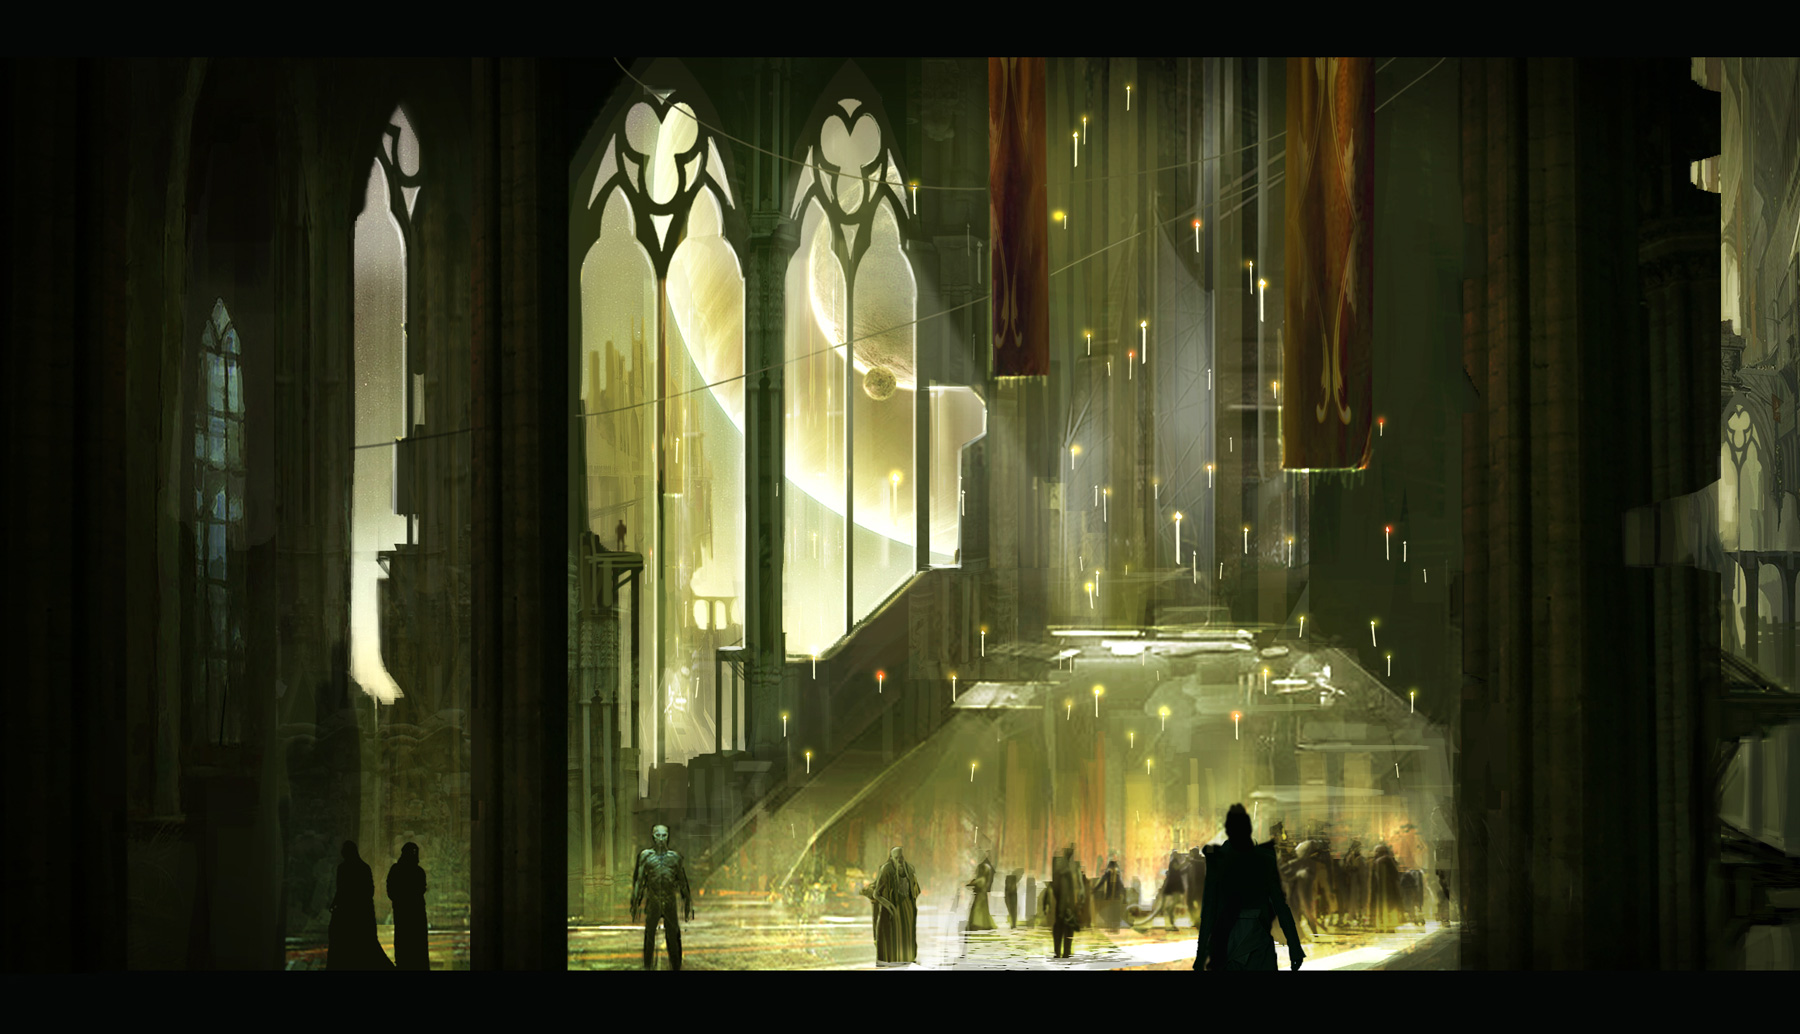 Jupiter Ascending Concept Art by The Aaron Sims Company